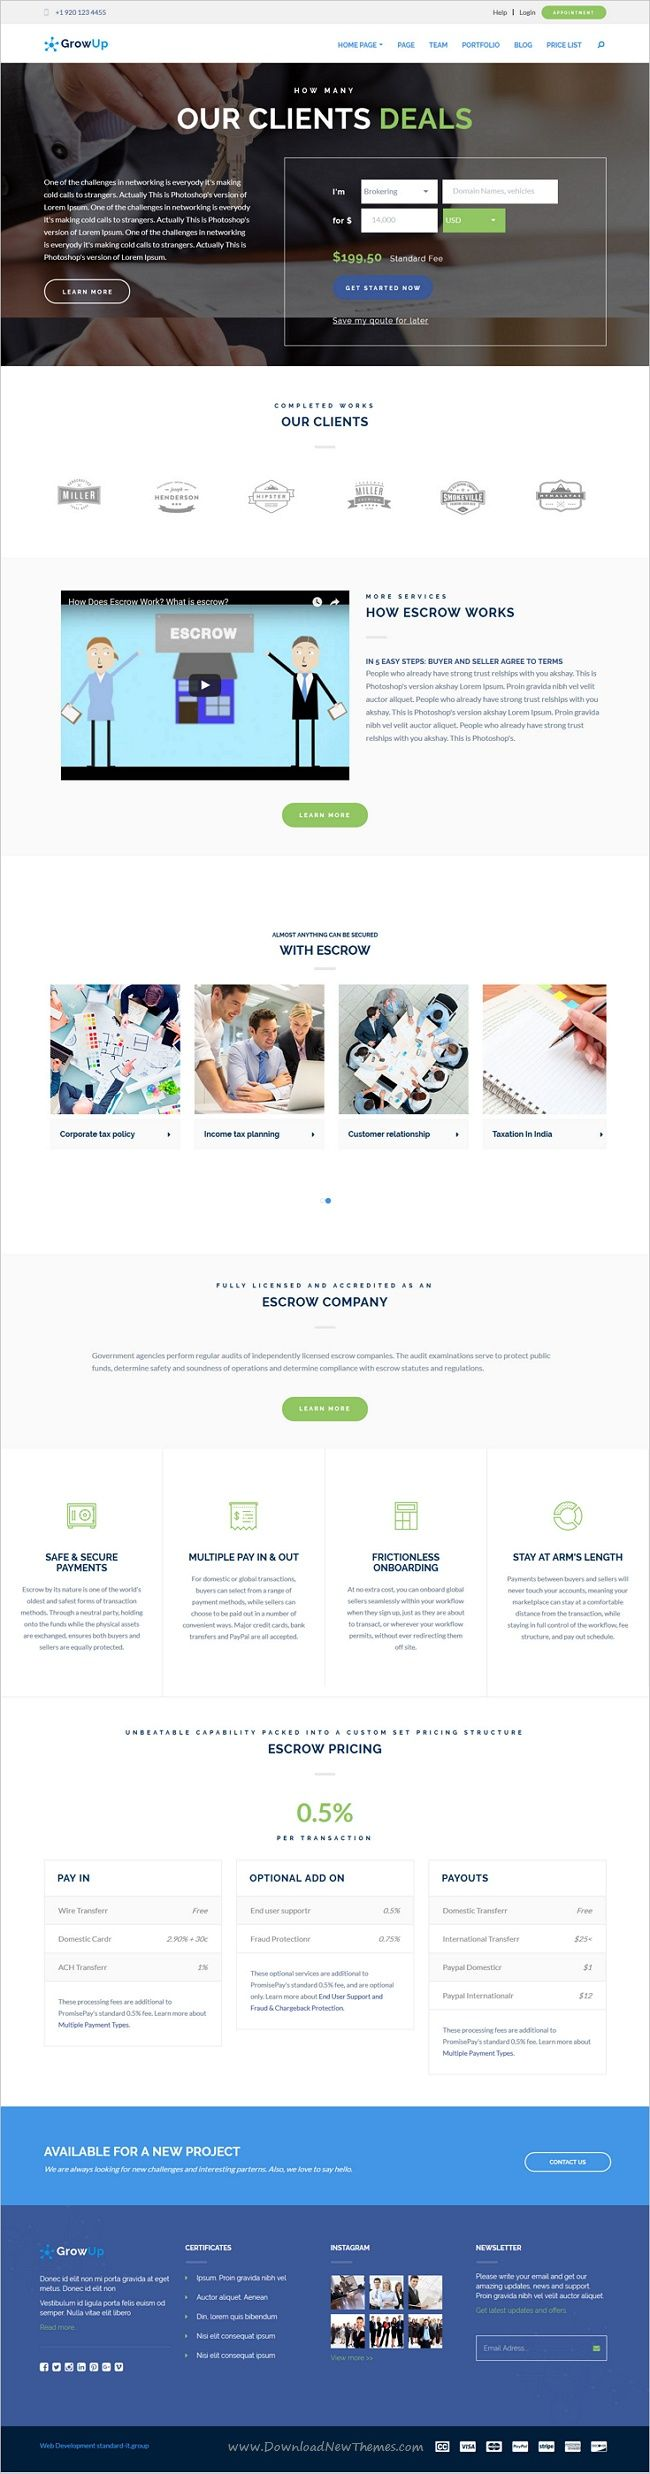 GrowUp is a modern #design 6in1 professional #WordPress theme for #escrow #business and financial websites download now➩ https://themeforest.net/item/growup-business-financial-wordpress-theme/18761663?ref=Datasata